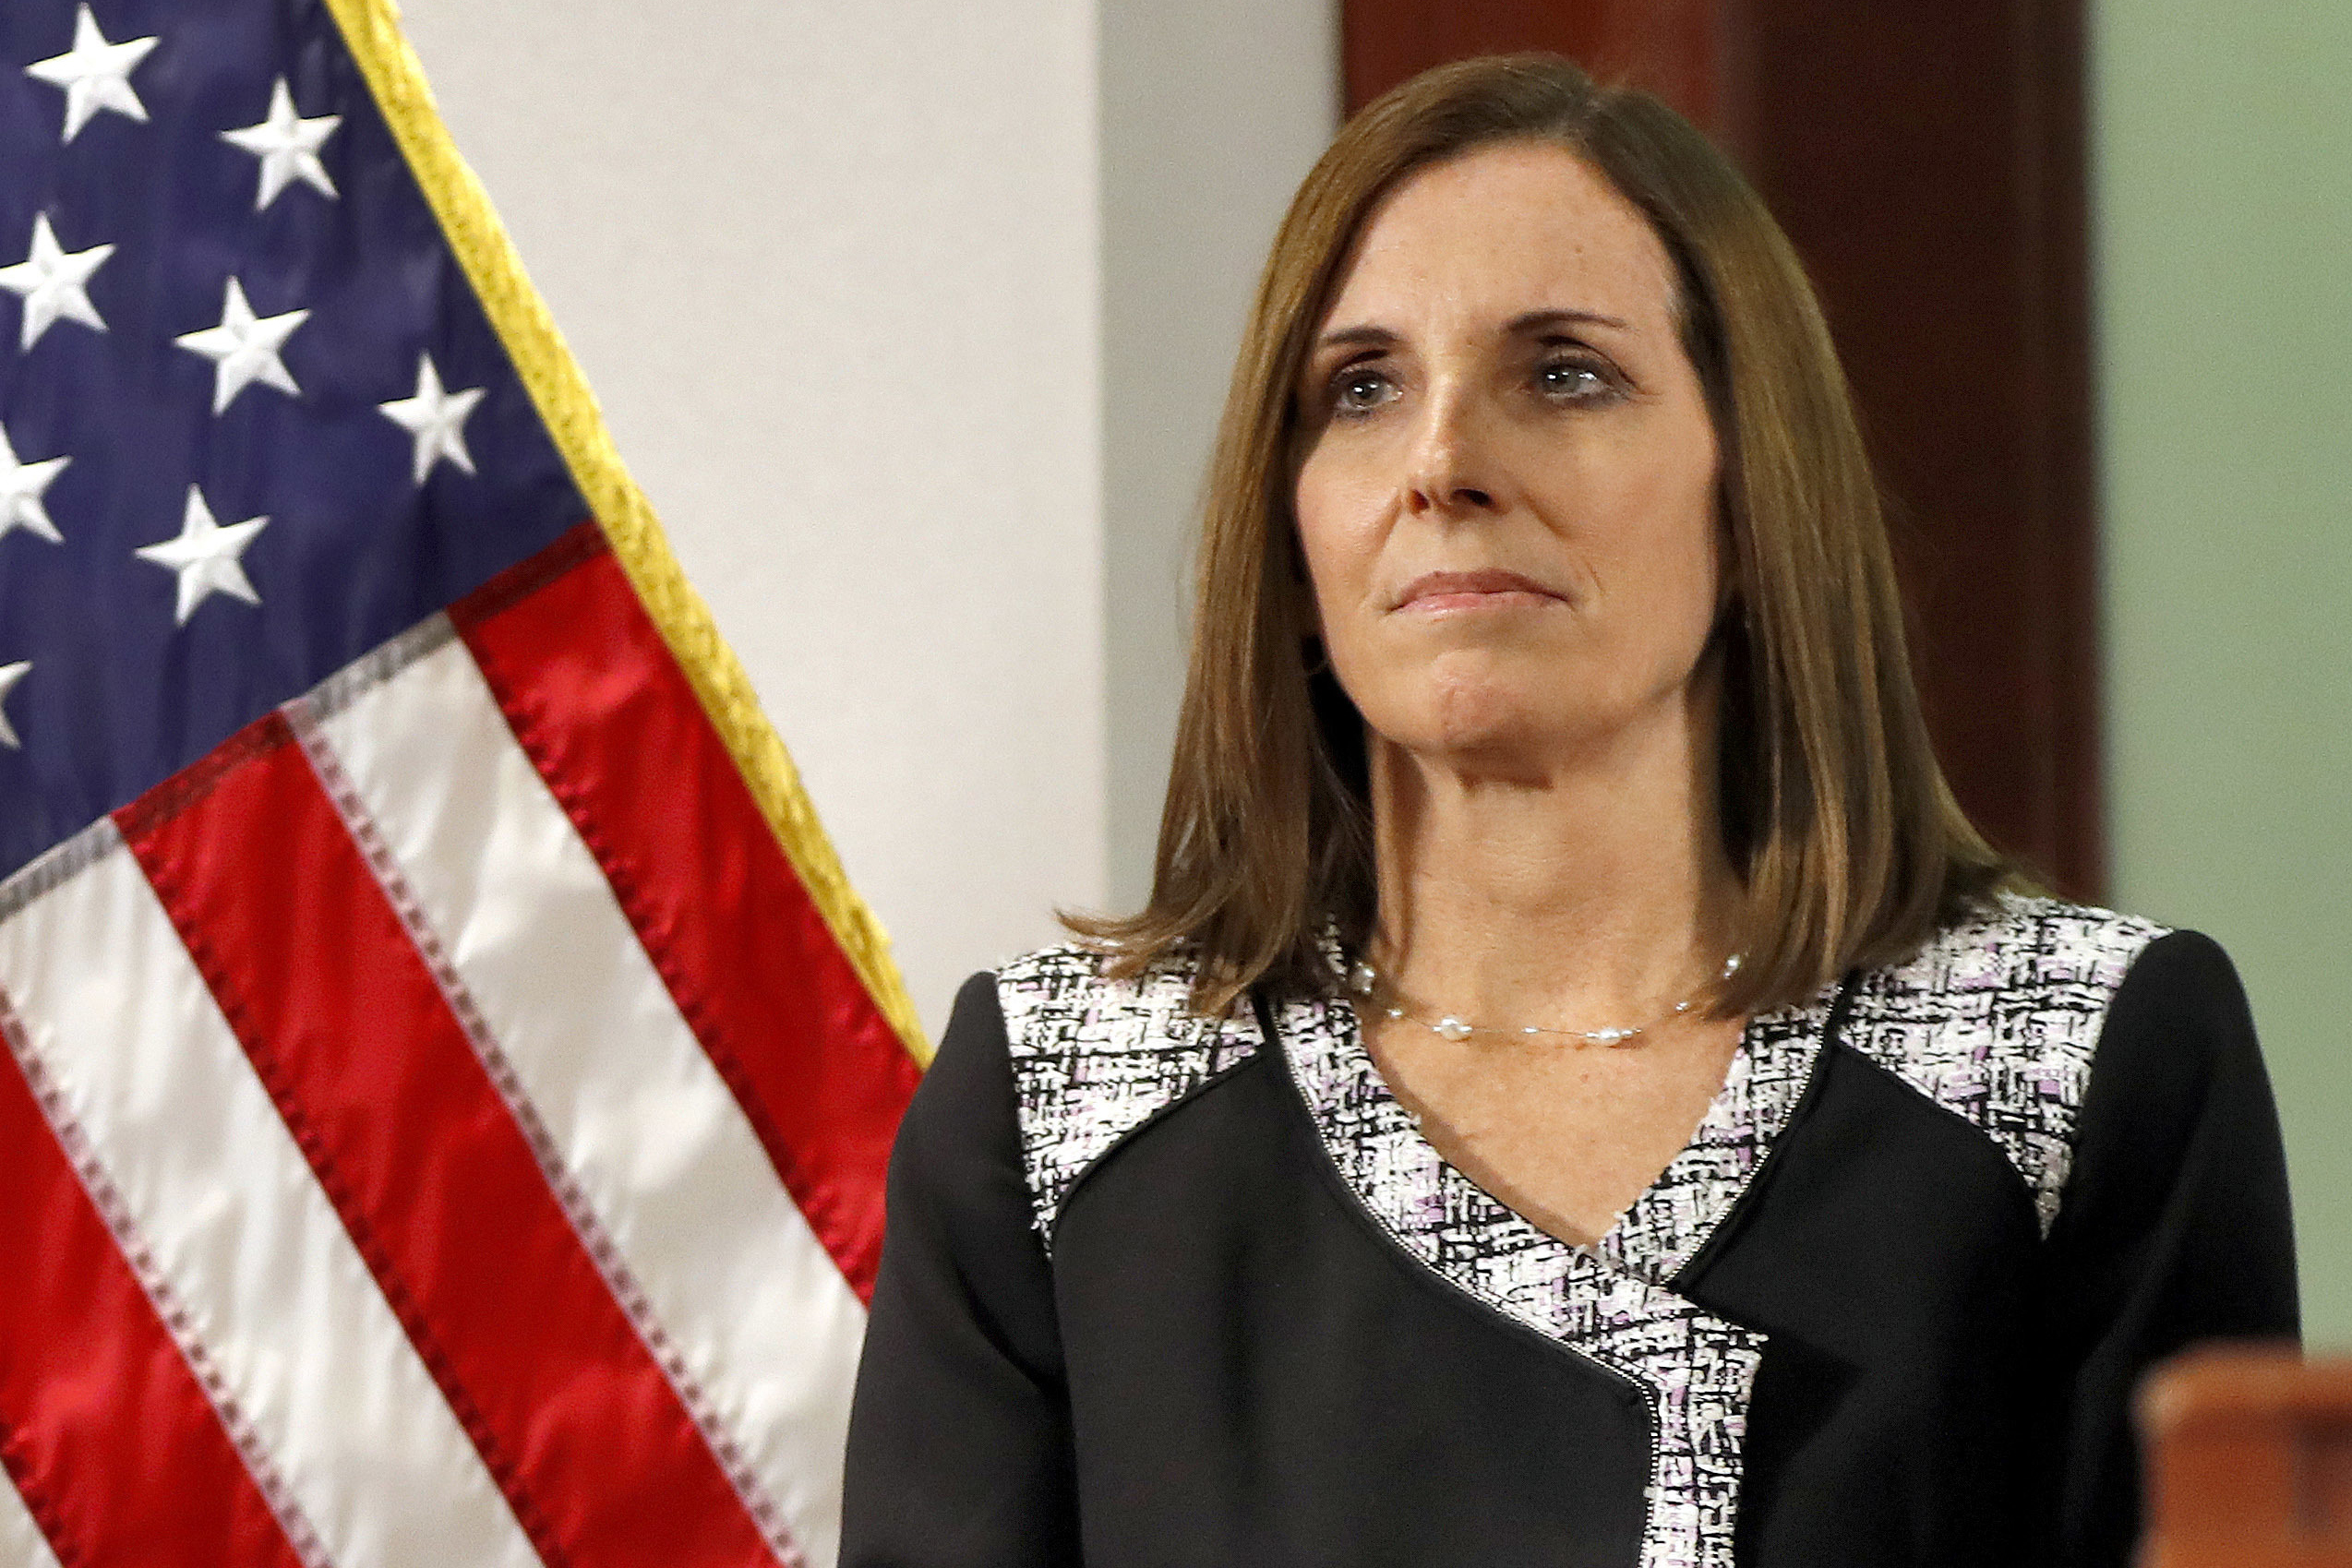 Sen. Martha McSally, R-Ariz., is shown before a December 2018 news conference in Phoenix. (Matt York/AP)